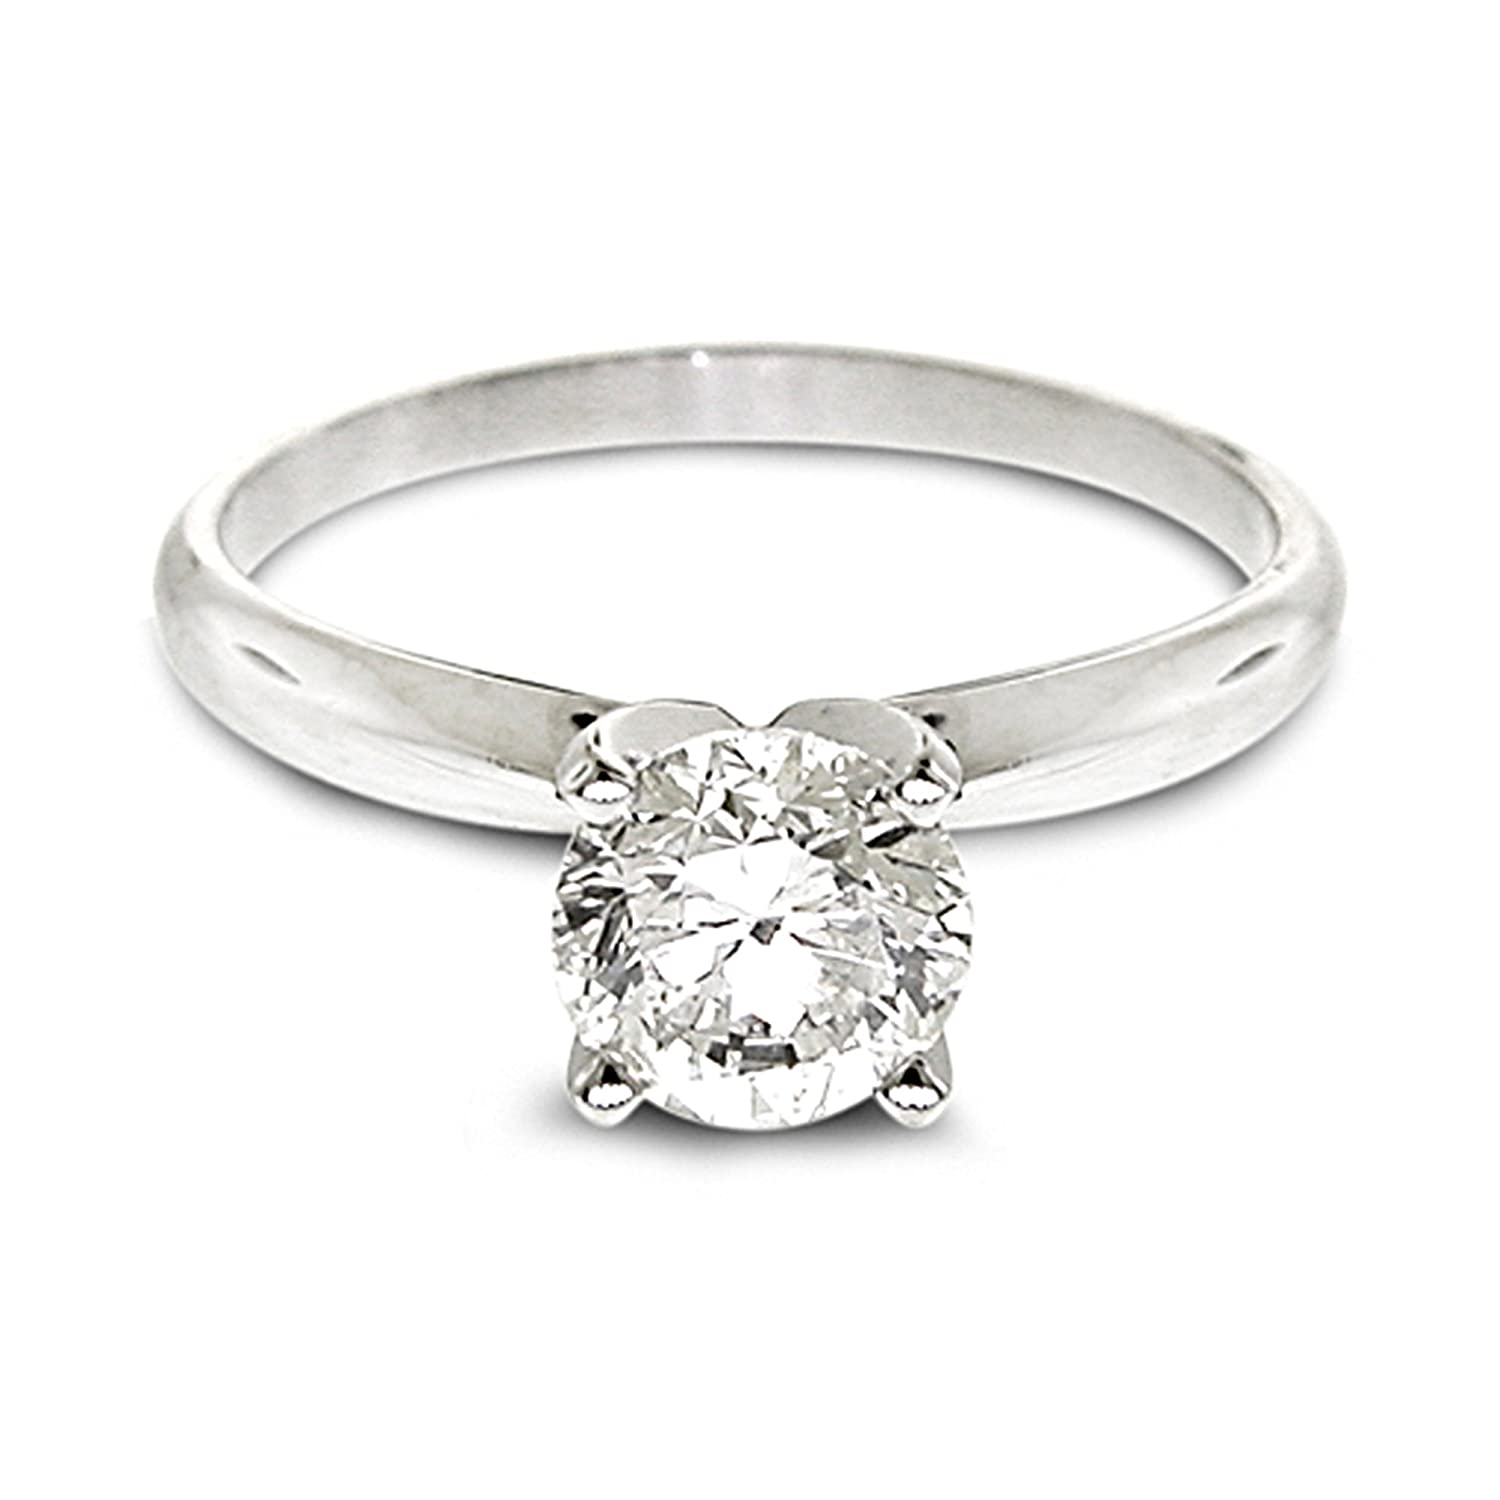 Diamond Studs Forever Solitaire Verlobungsring mit 1 2 ct